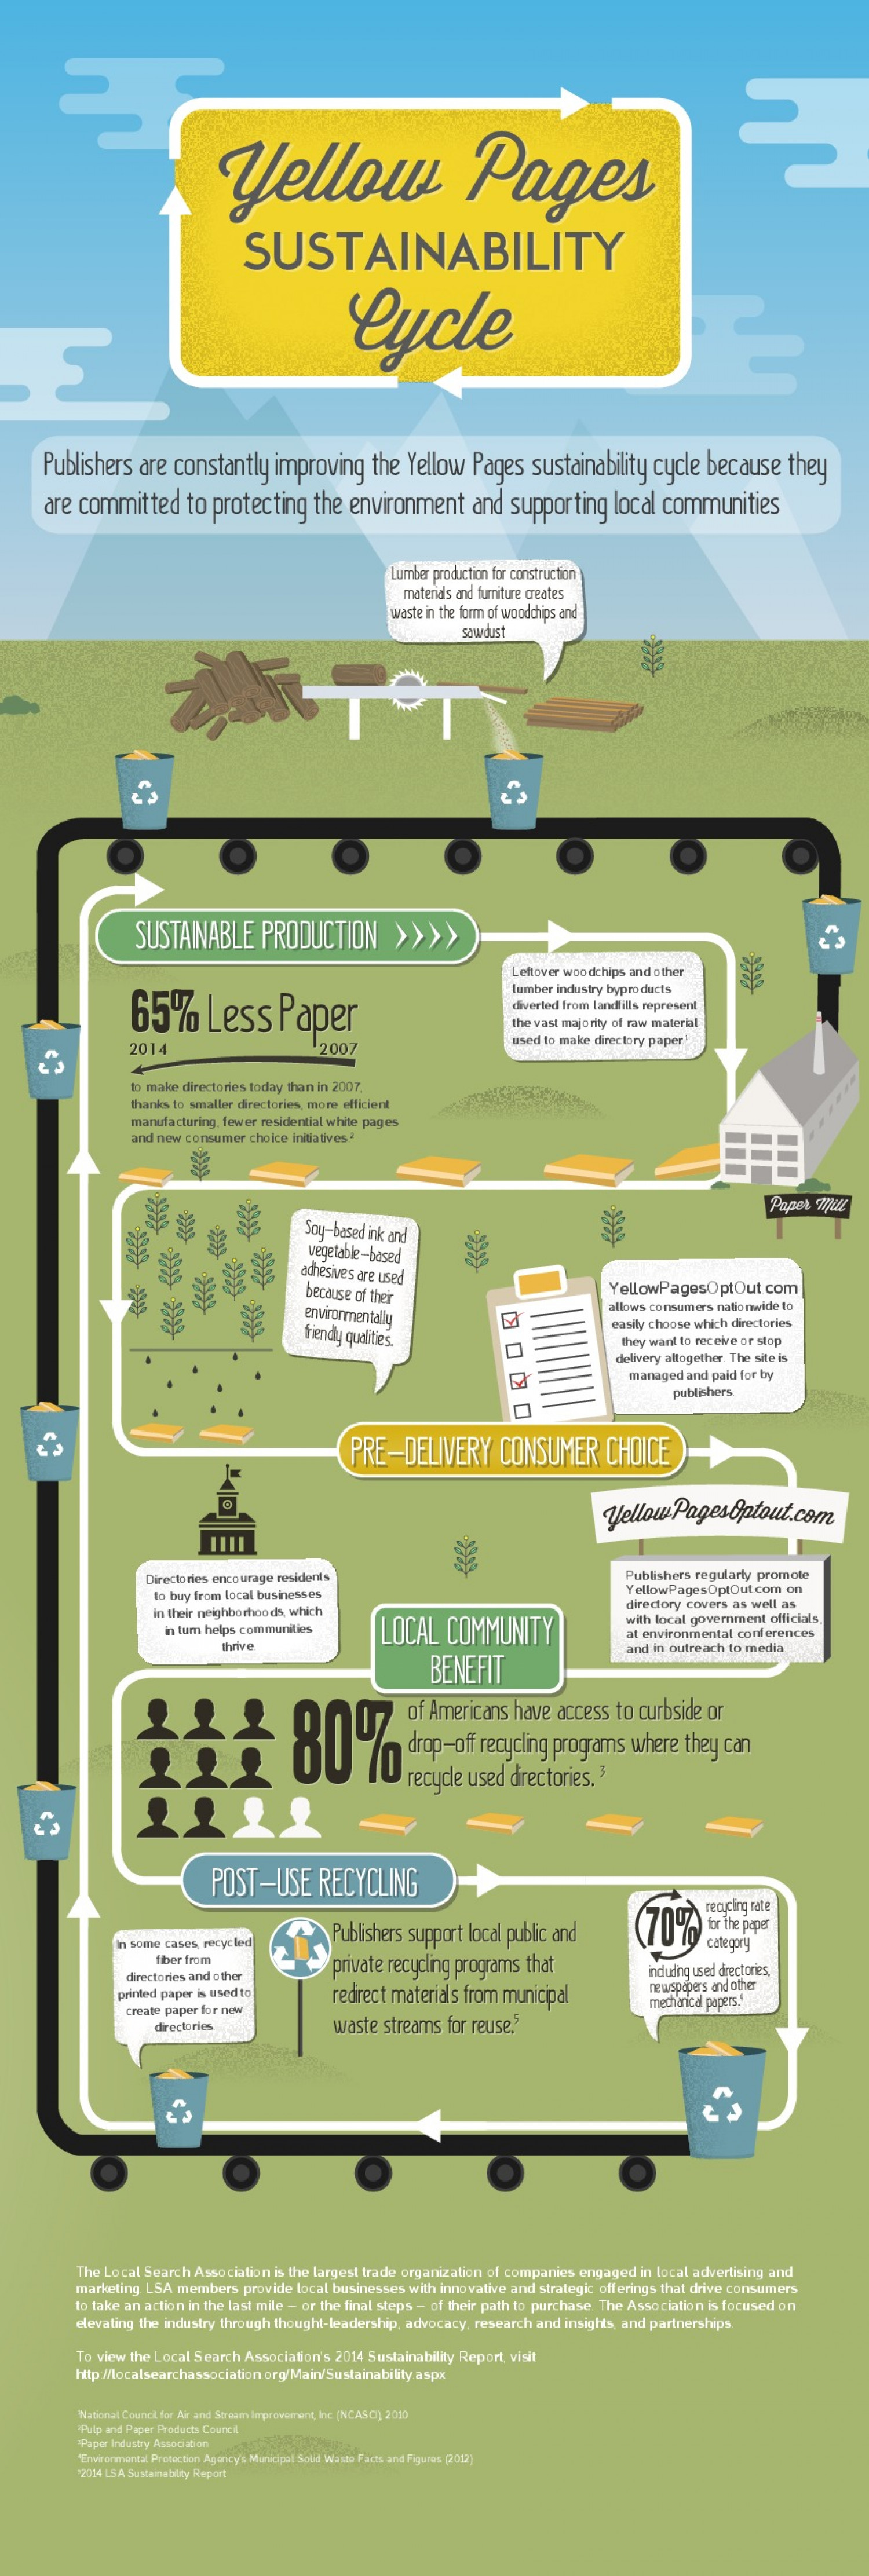 Yellow Pages Sustainability Cycle Infographic